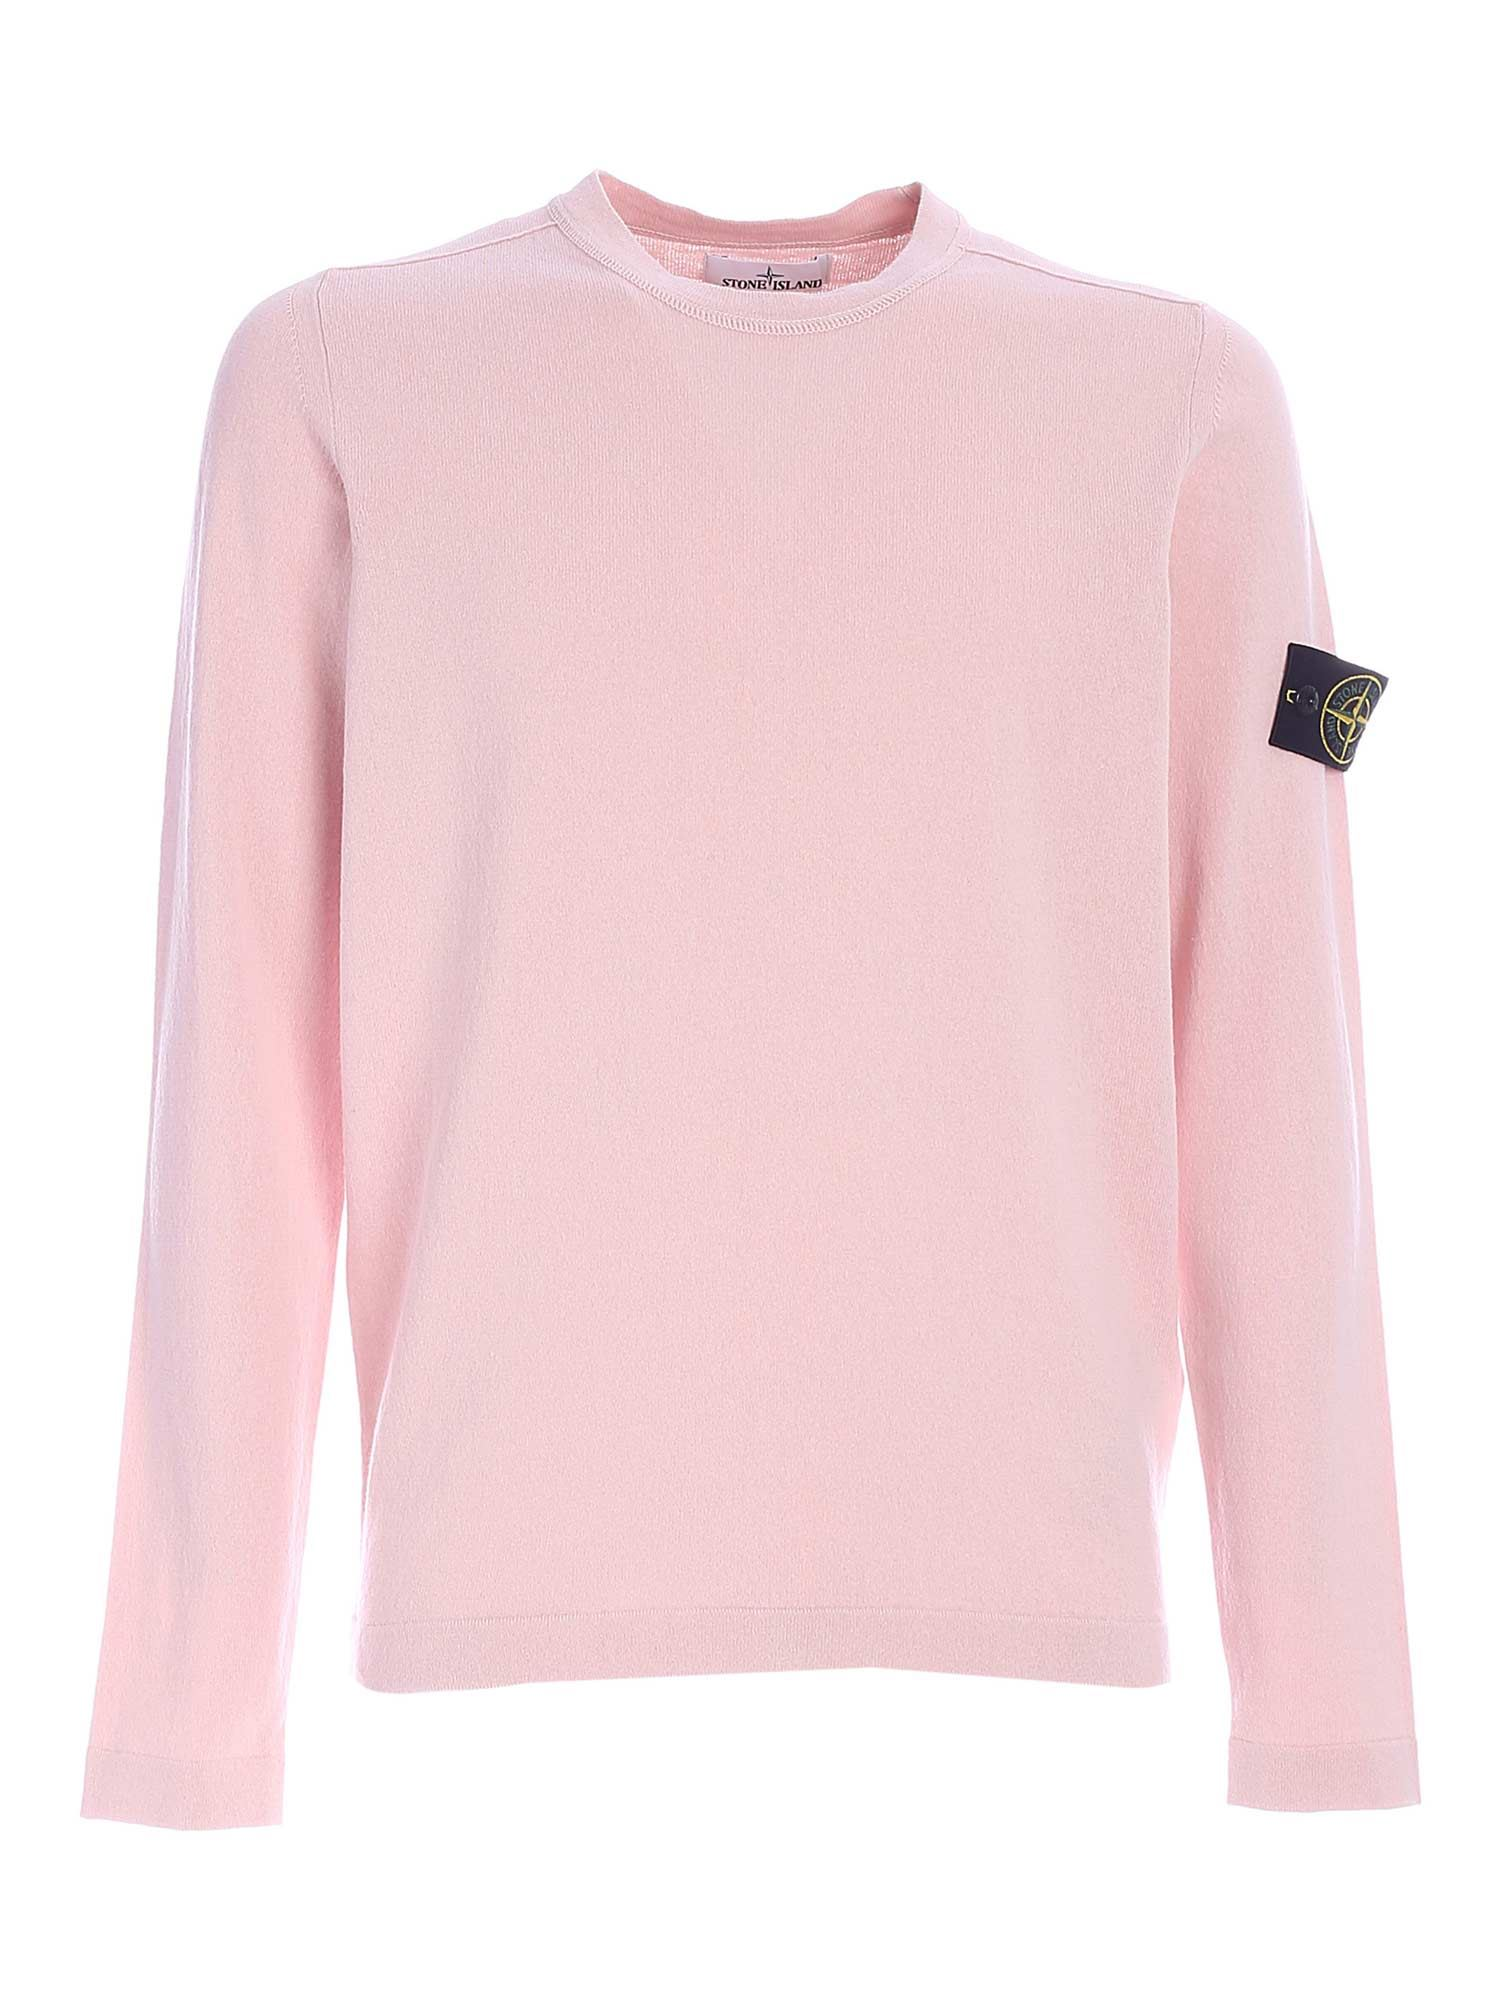 Stone Island COTTON SWEATER IN PINK